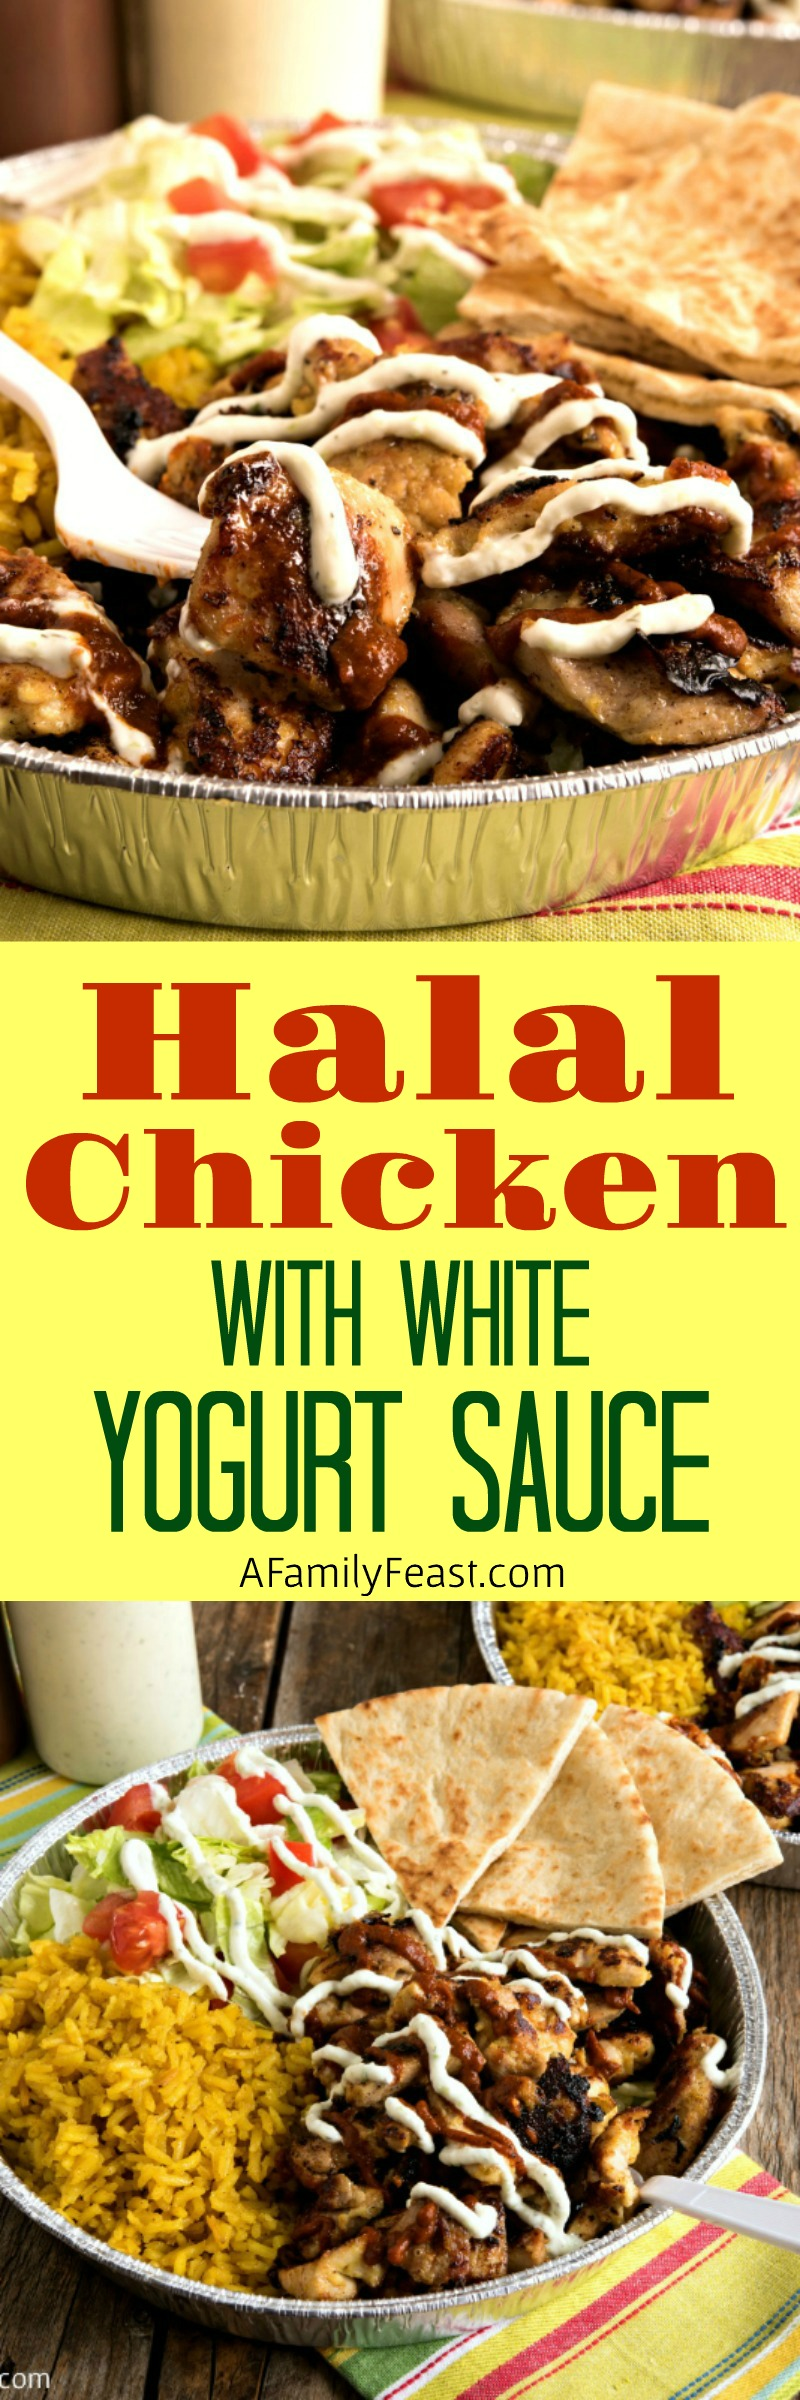 Halal Cart-Style Chicken with White Yogurt Sauce - A delicious copycat recipe that tastes just like the popular New York City food trucks.